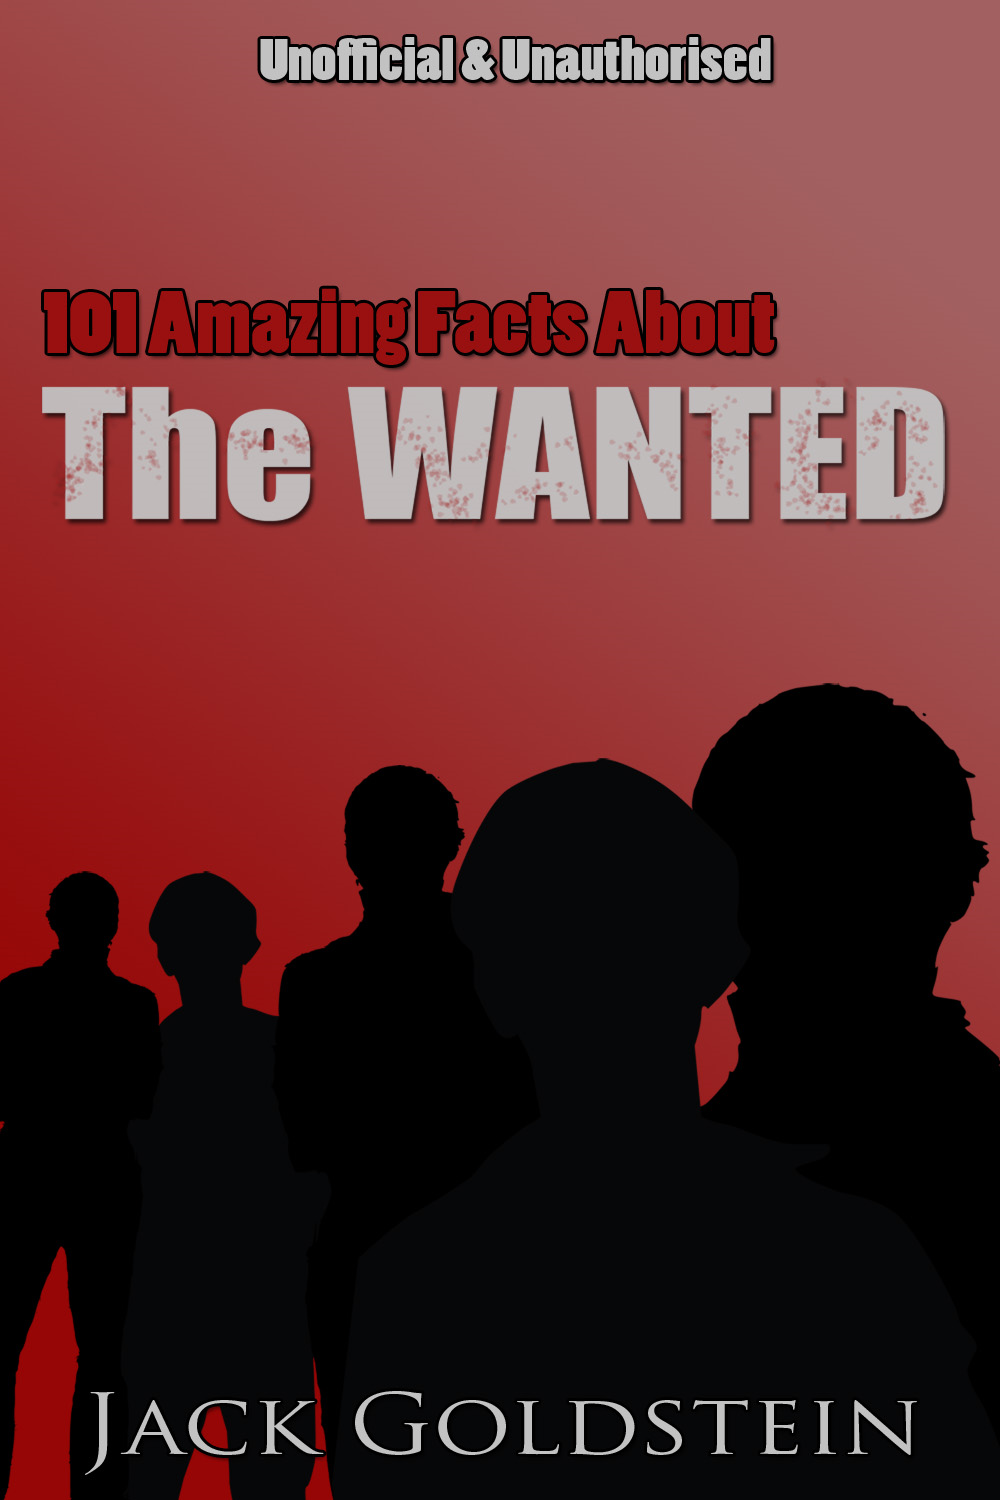 101 Amazing Facts About The Wanted